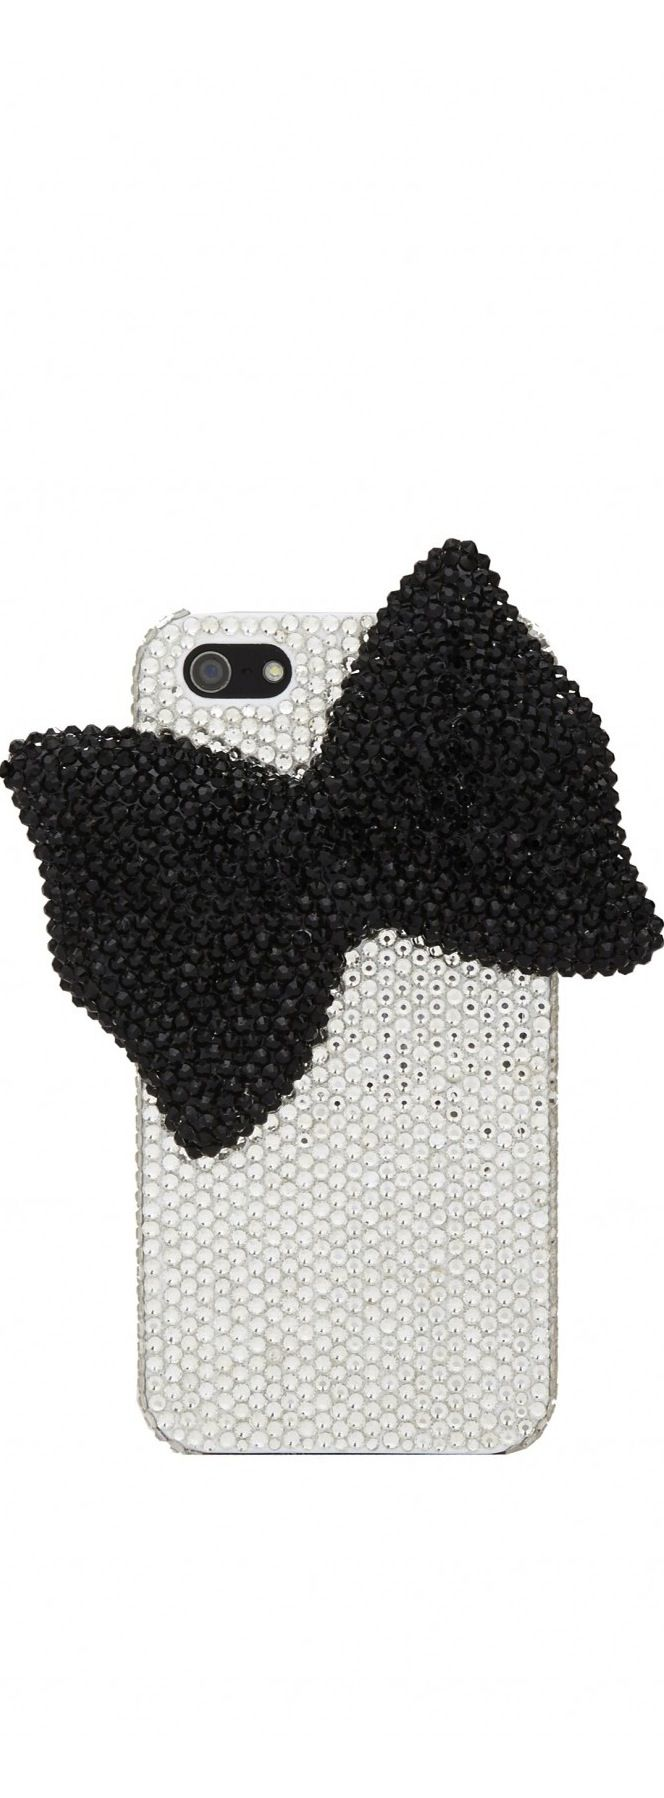 Displaying 18u0026gt; Images For - Cute Iphone 4 Cases Pinterest...